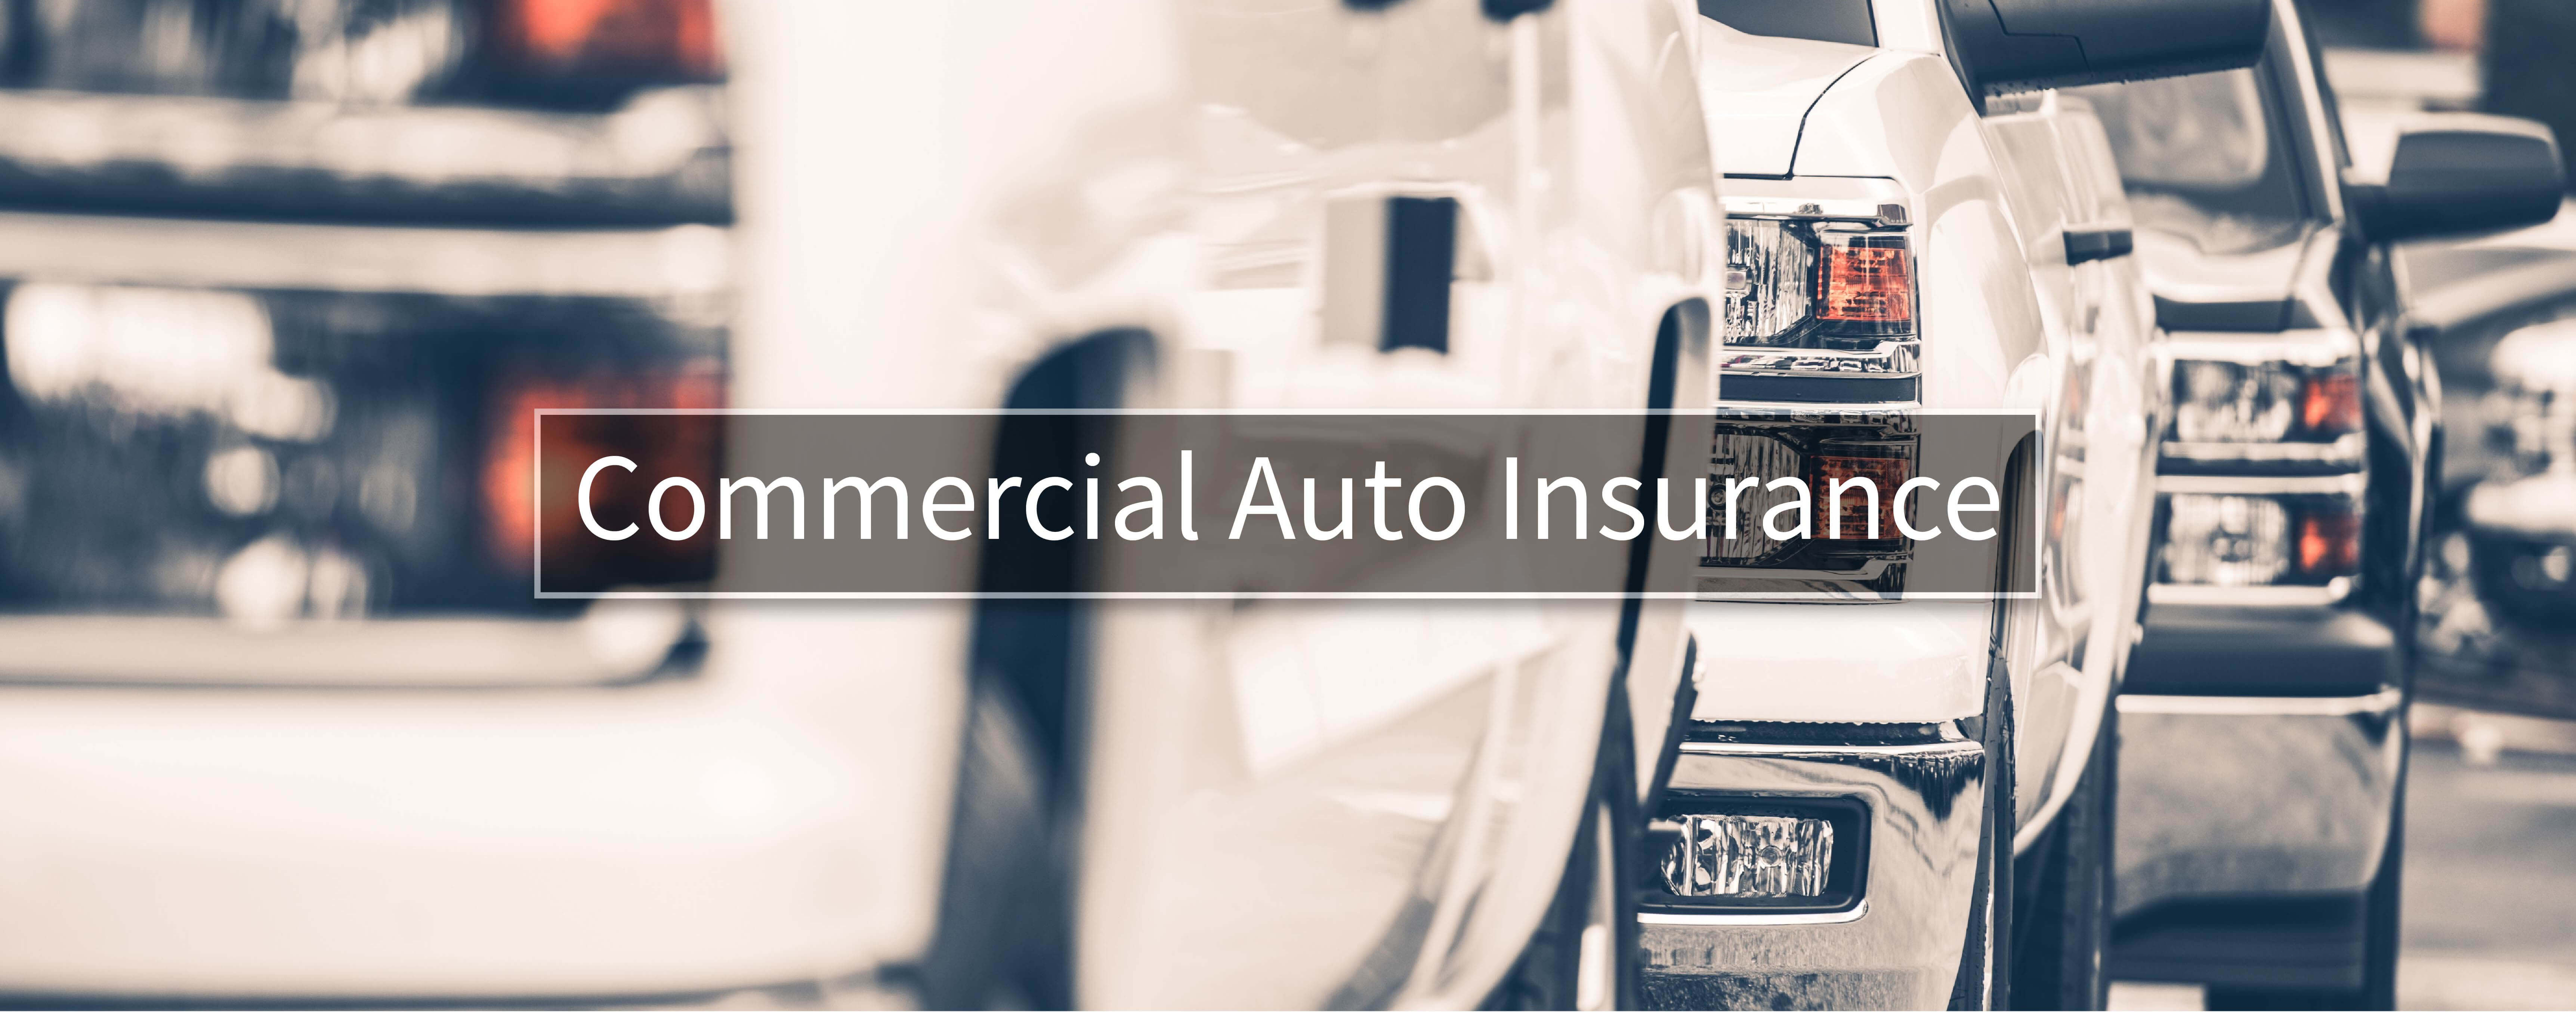 Commercial Auto Insurance Framingham